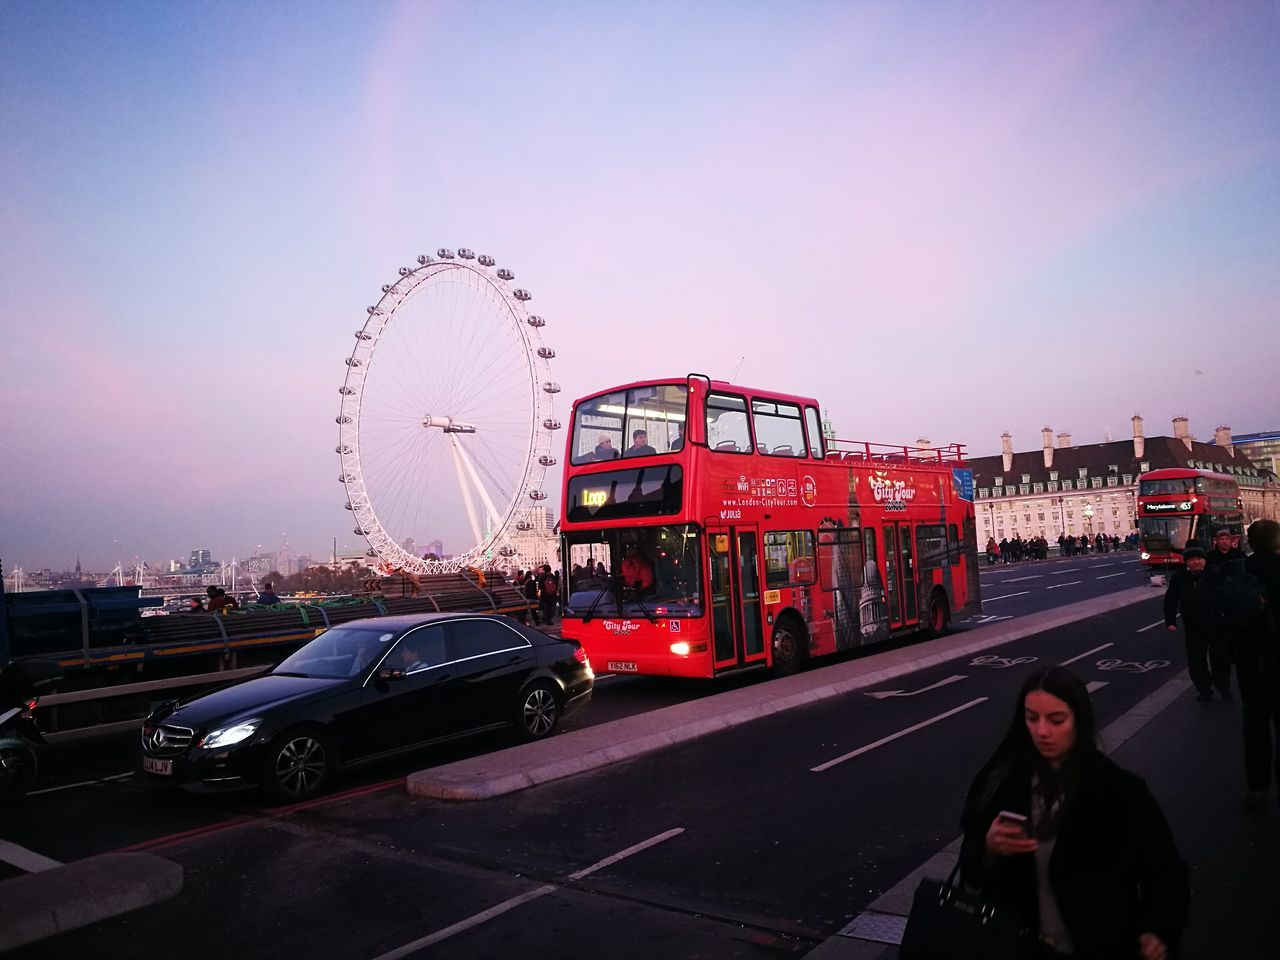 London London Bus Ferris Wheel Car Cultures Outdoors People London Eye Architecture